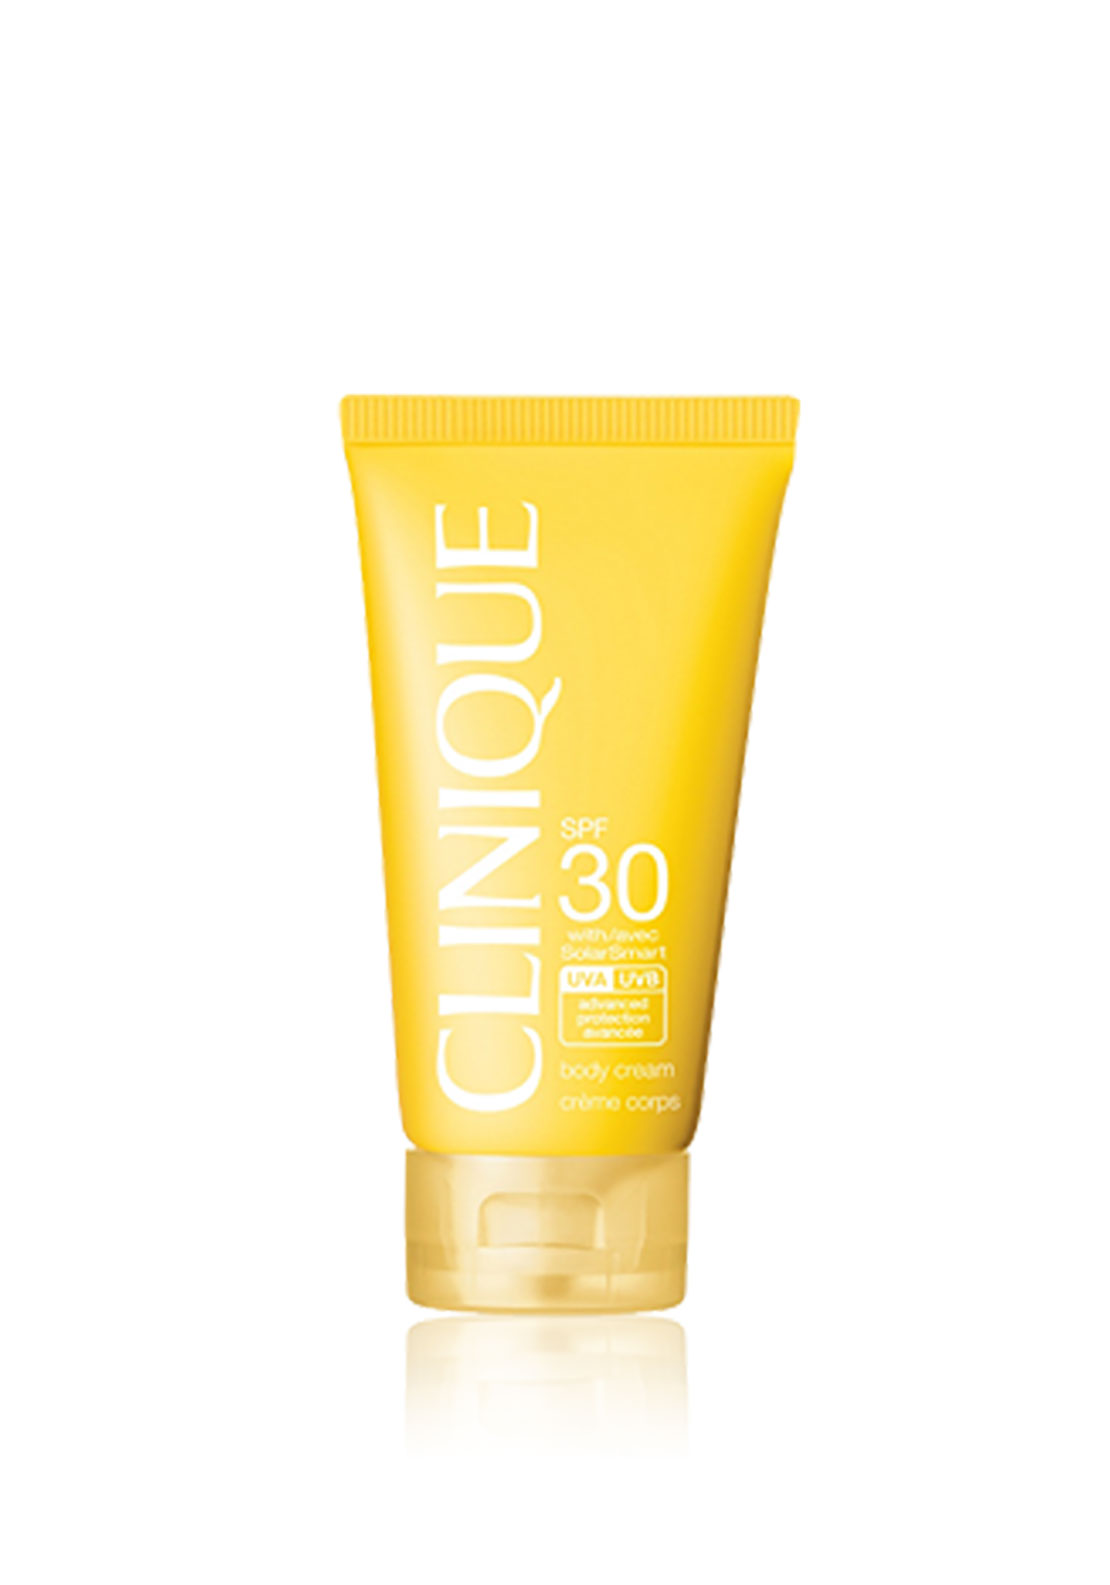 Clinique Body Cream SPF30, 150ml